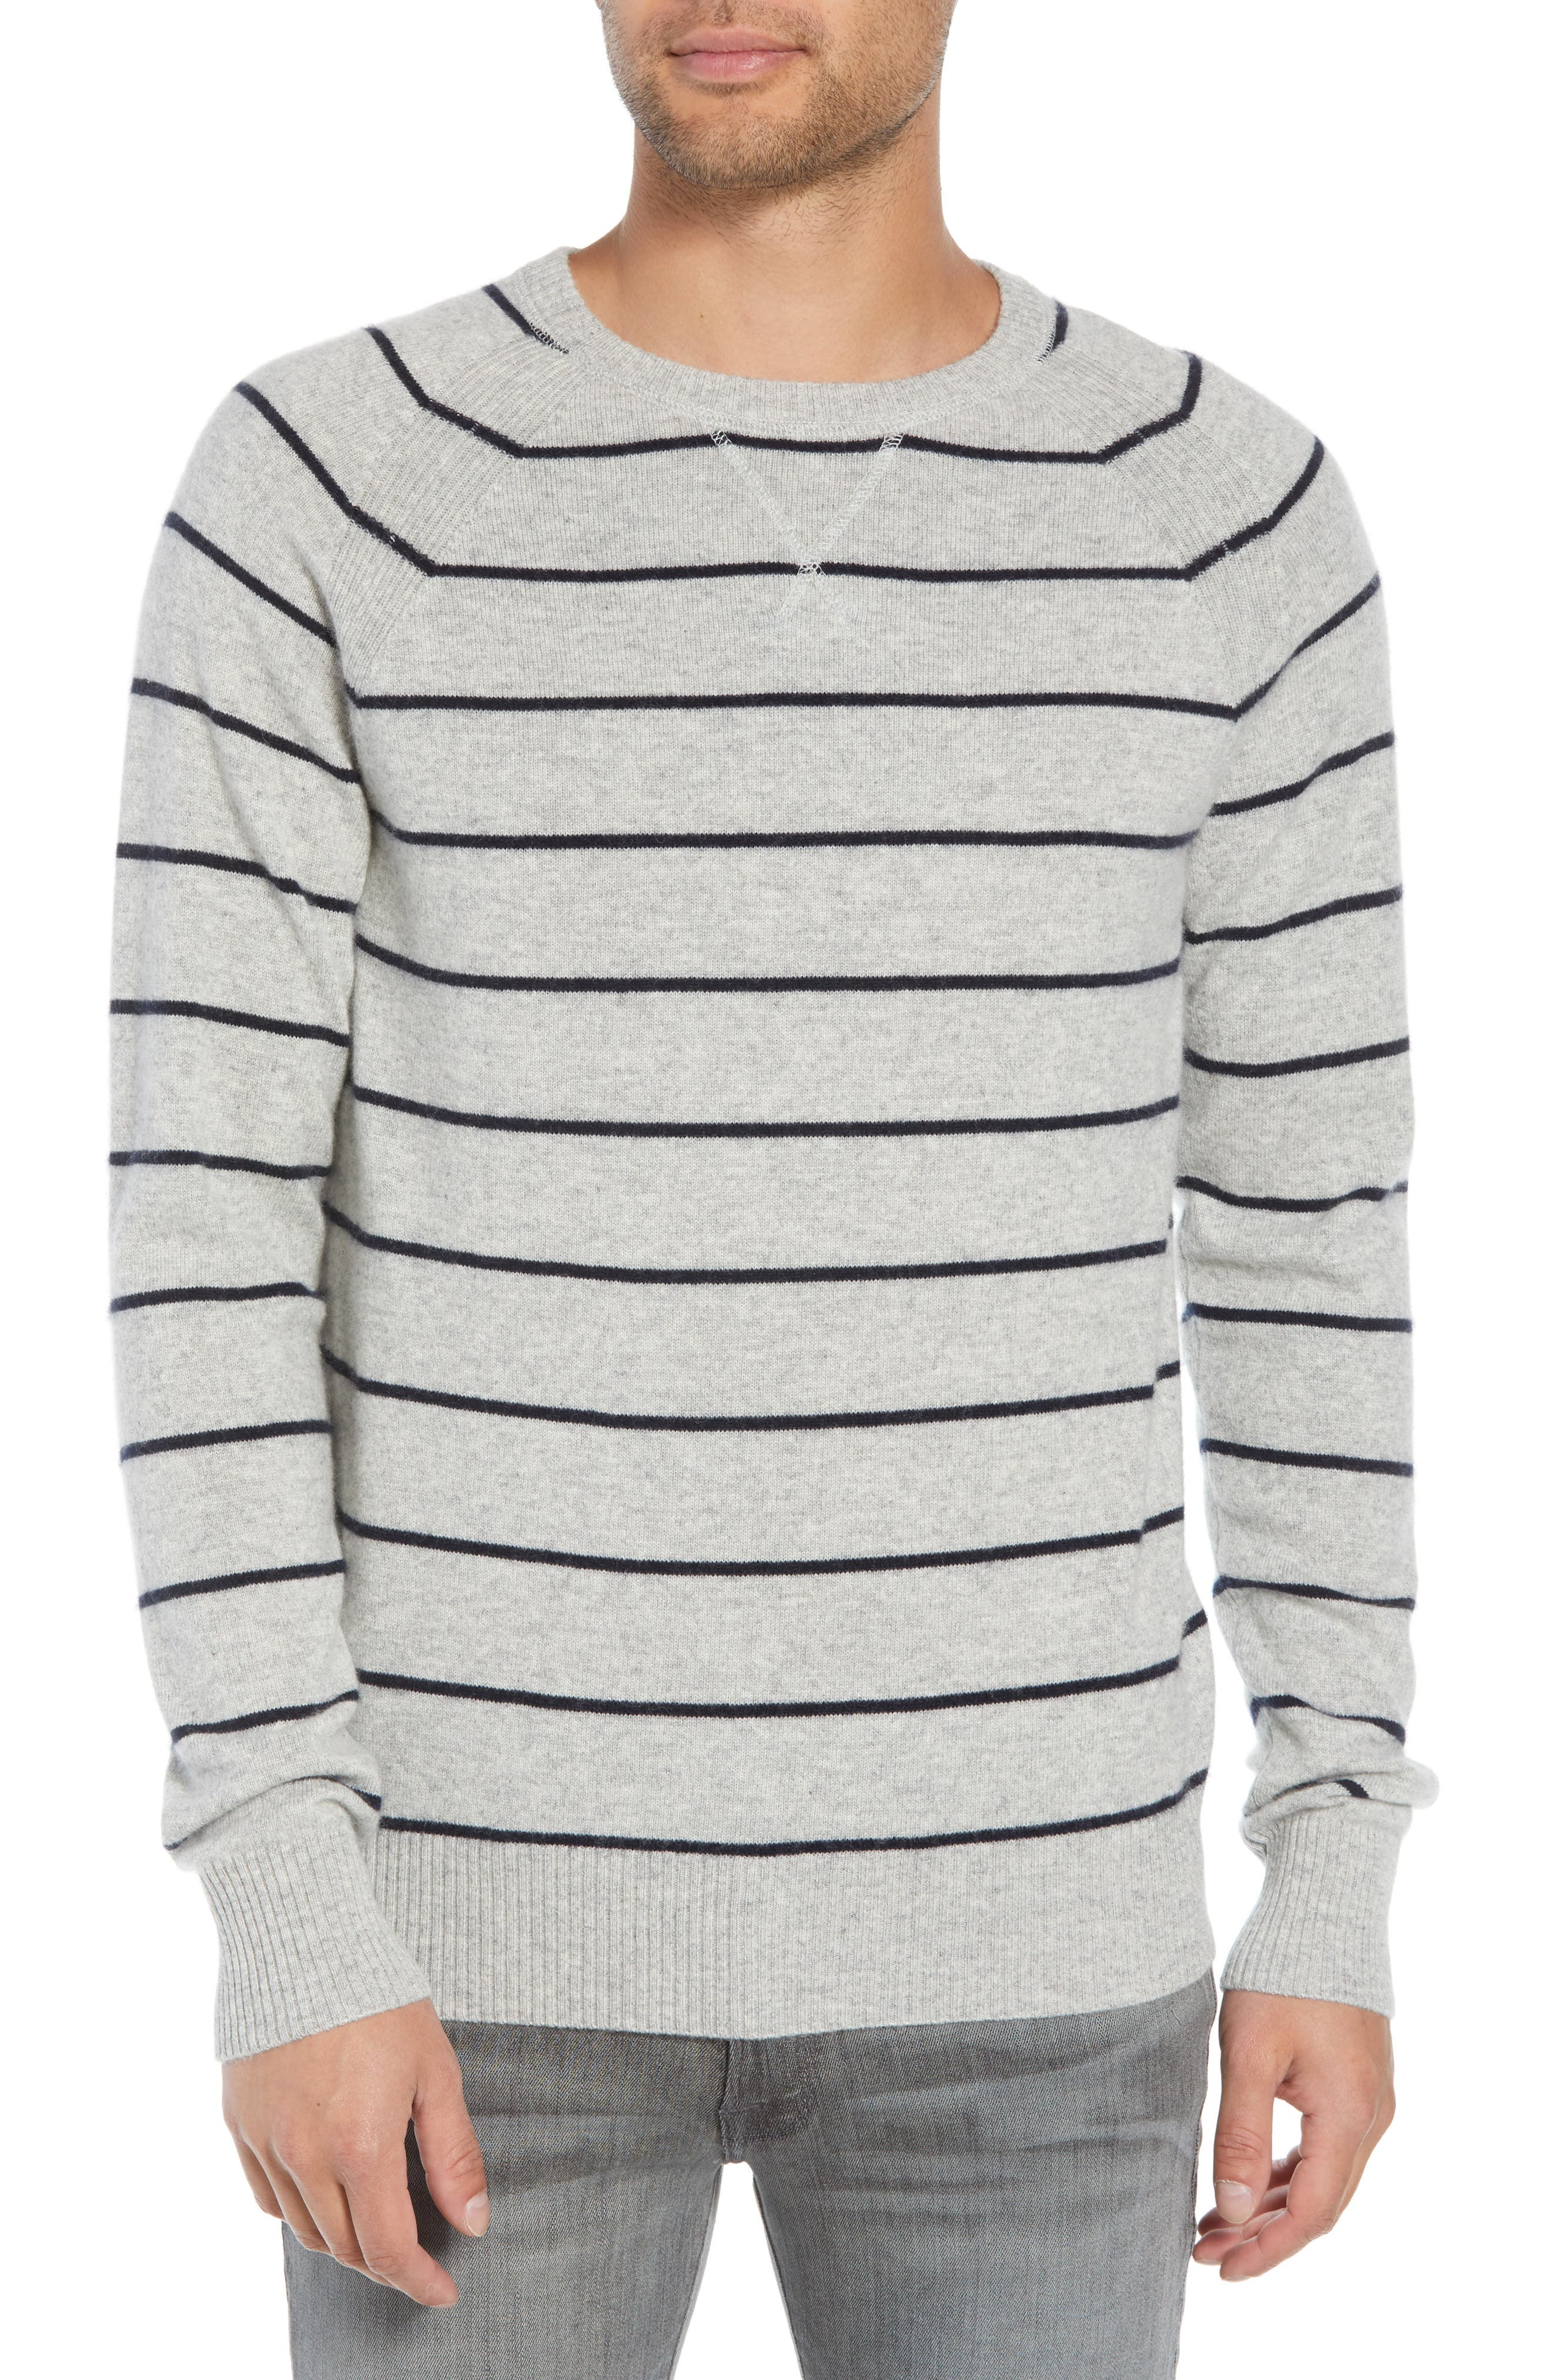 Caleb Stripe Cashmere Sweater,                         Main,                         color, LIGHT HEATHER GREY/ NAVY